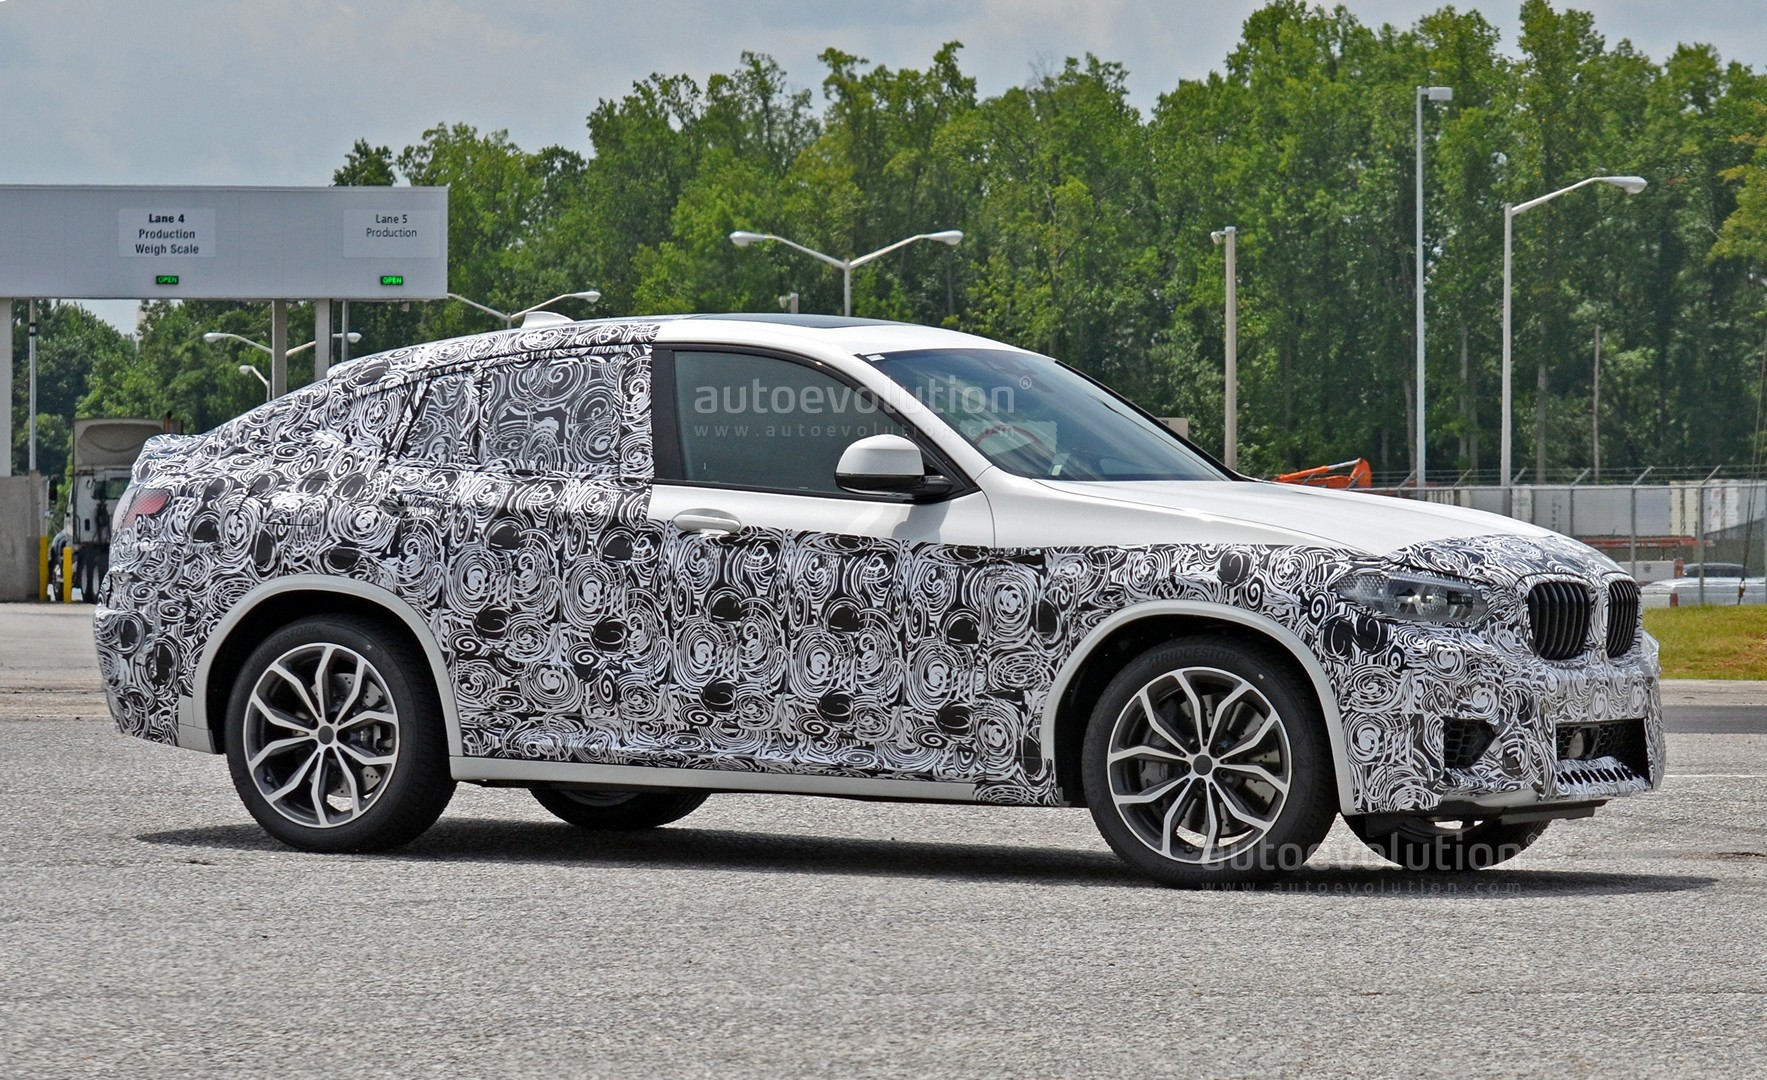 Spyshots 2019 Bmw X4 M Matches S58 Engine With Quad Exhaust Autoevolution